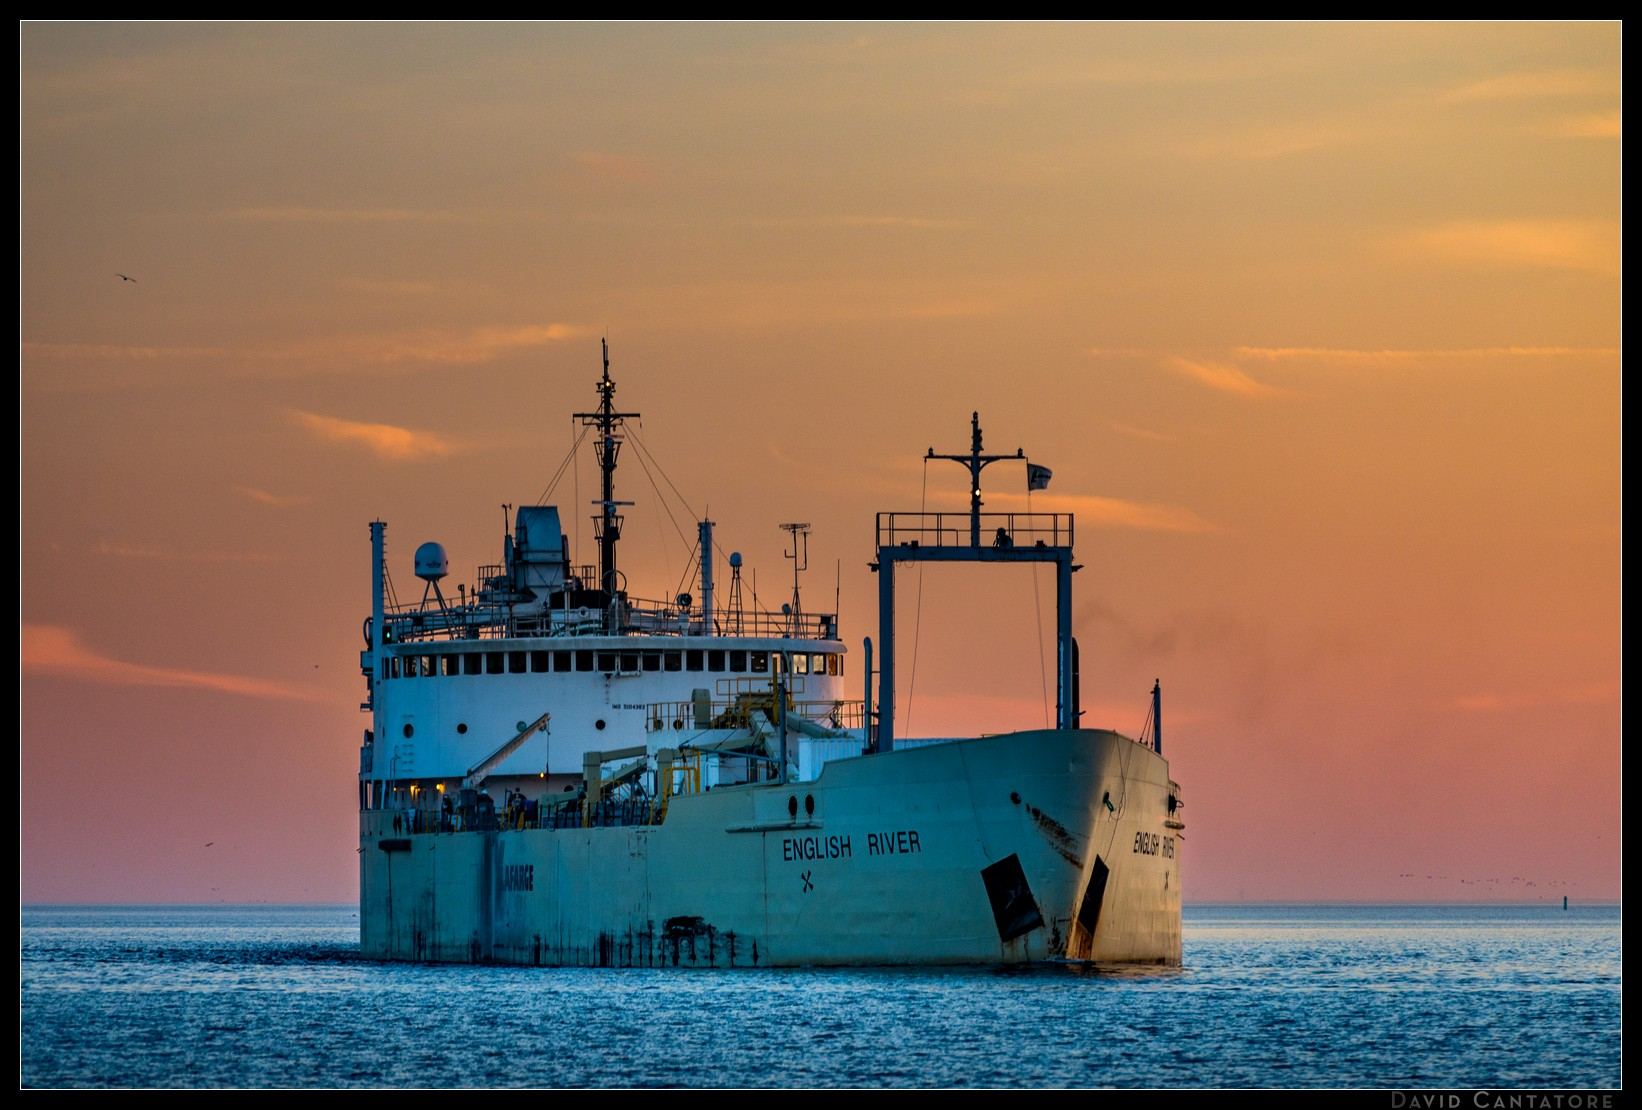 Freighter entering the Toronto harbour at sunset.